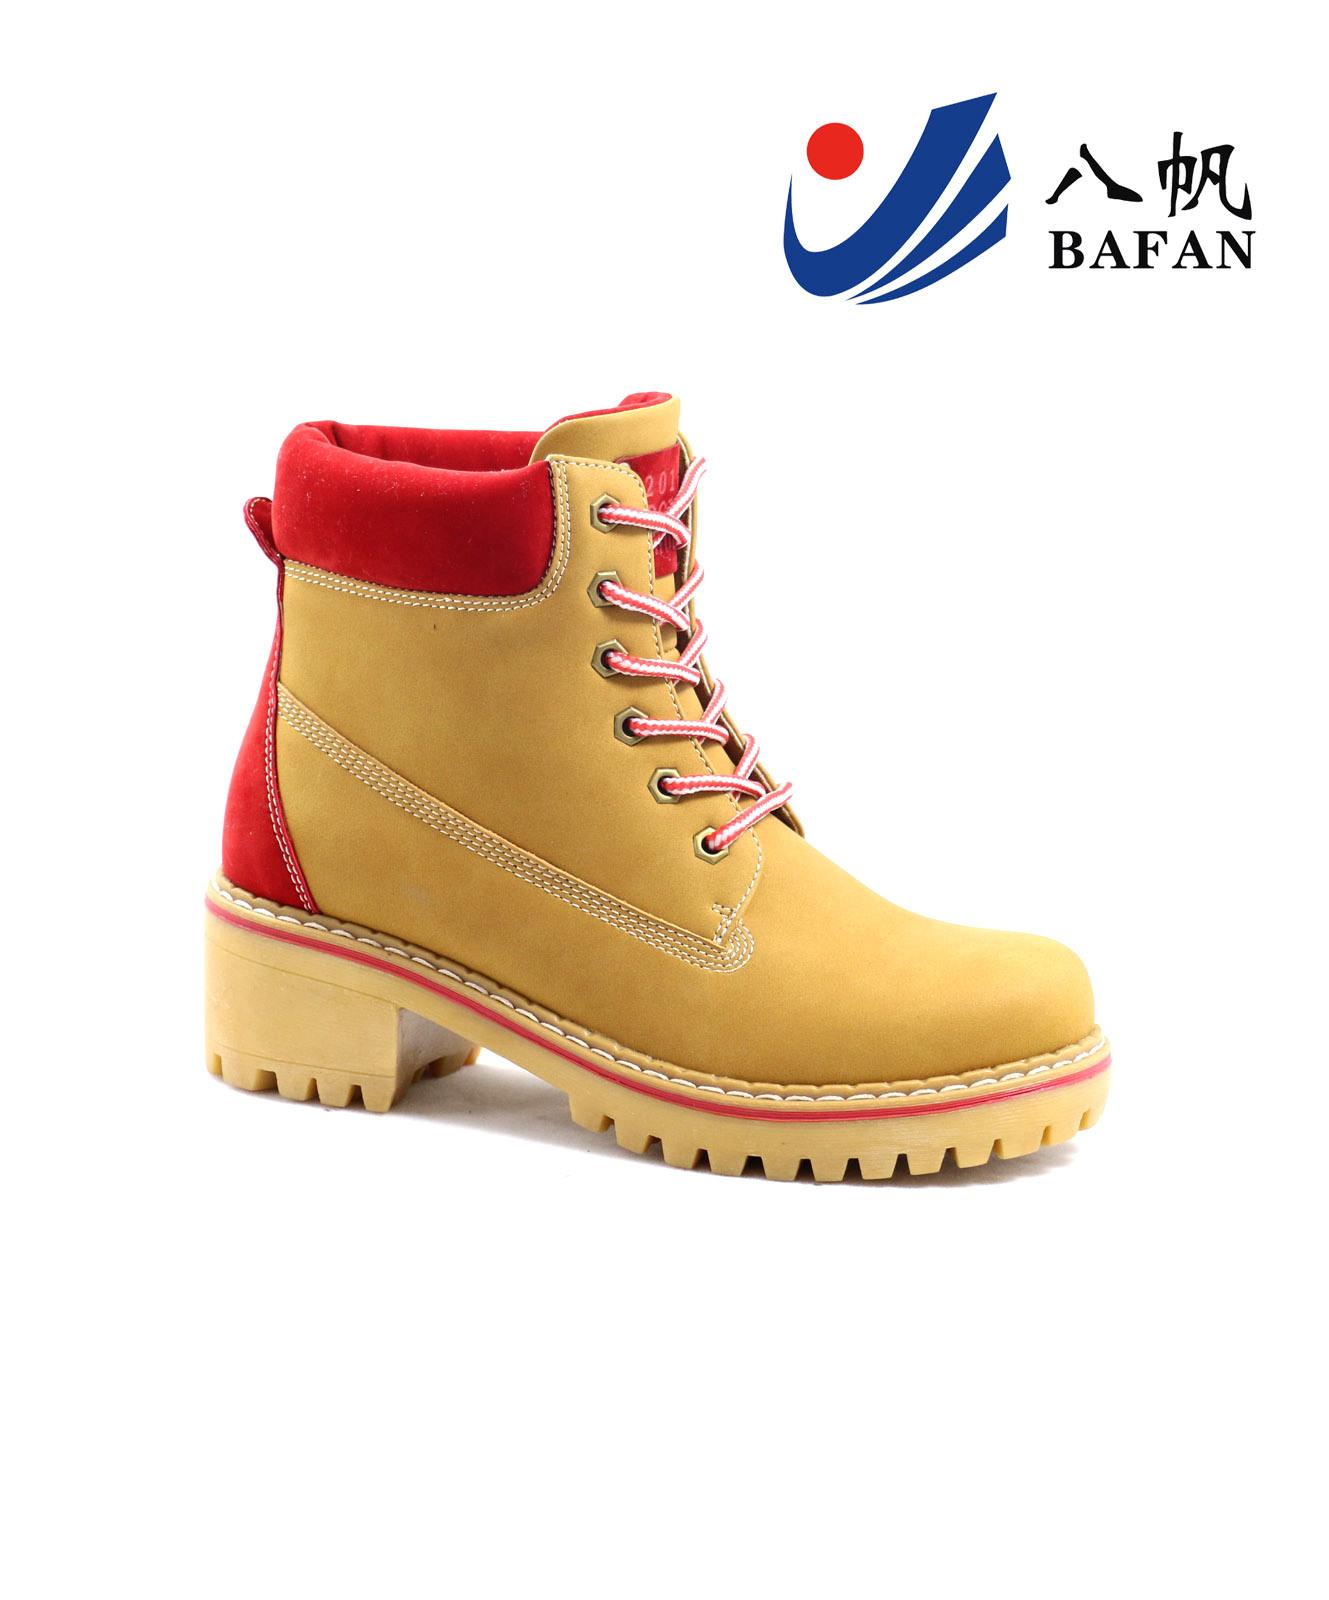 Boots Women Boots Lady Boots Snow Boots Bfm0025